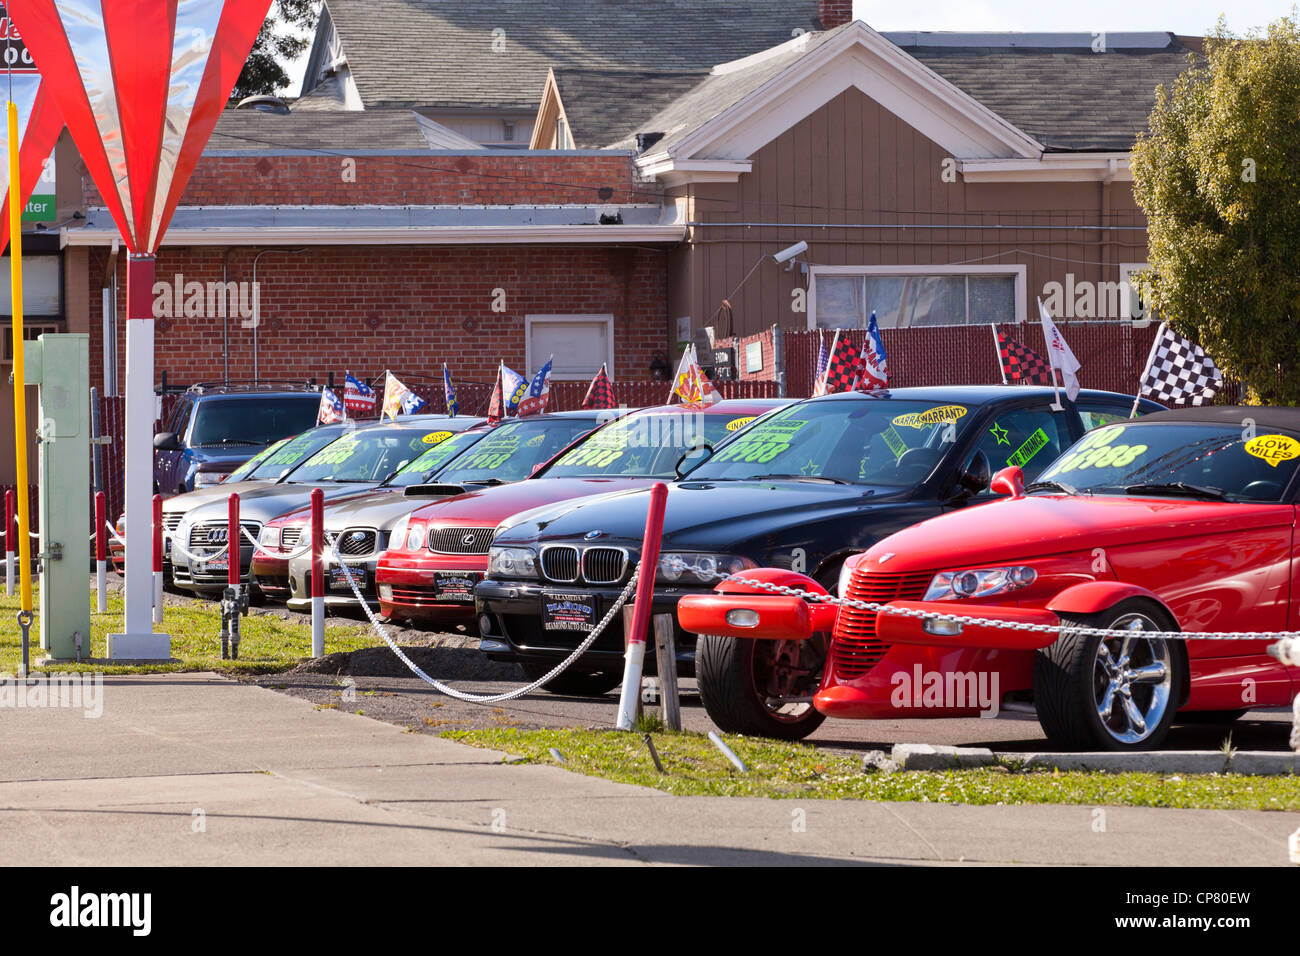 cars on a used car sales lot california usa stock photo 48119201 alamy. Black Bedroom Furniture Sets. Home Design Ideas